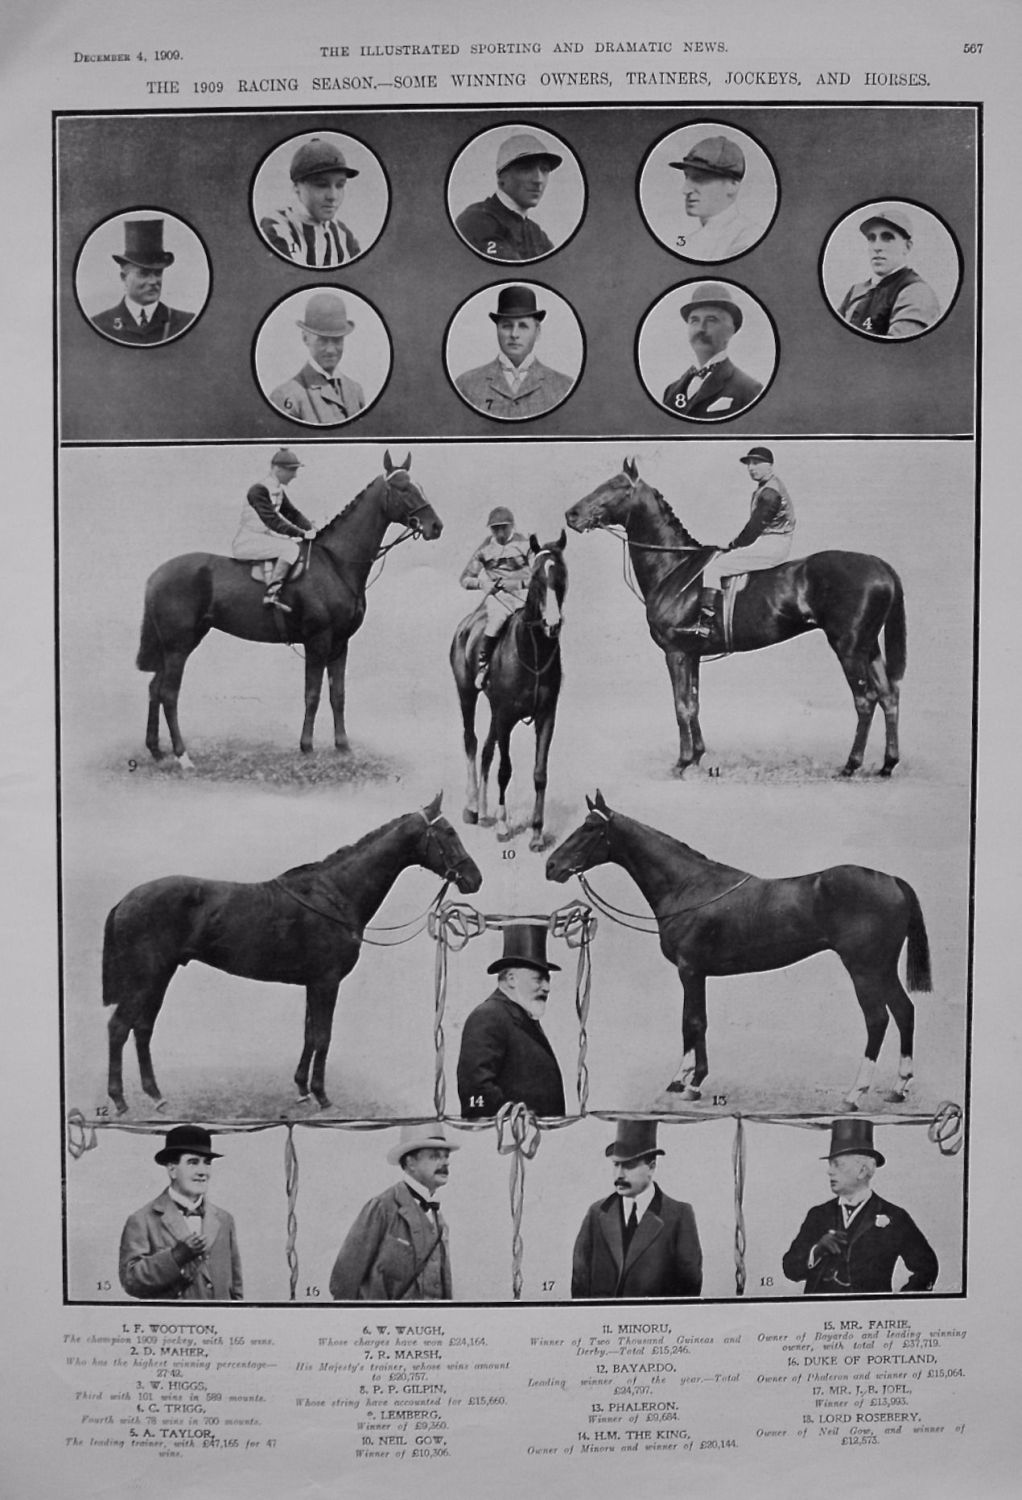 The 1909 Racing Season. - Some Winning Owners, Trainers, Jockeys, and Horse